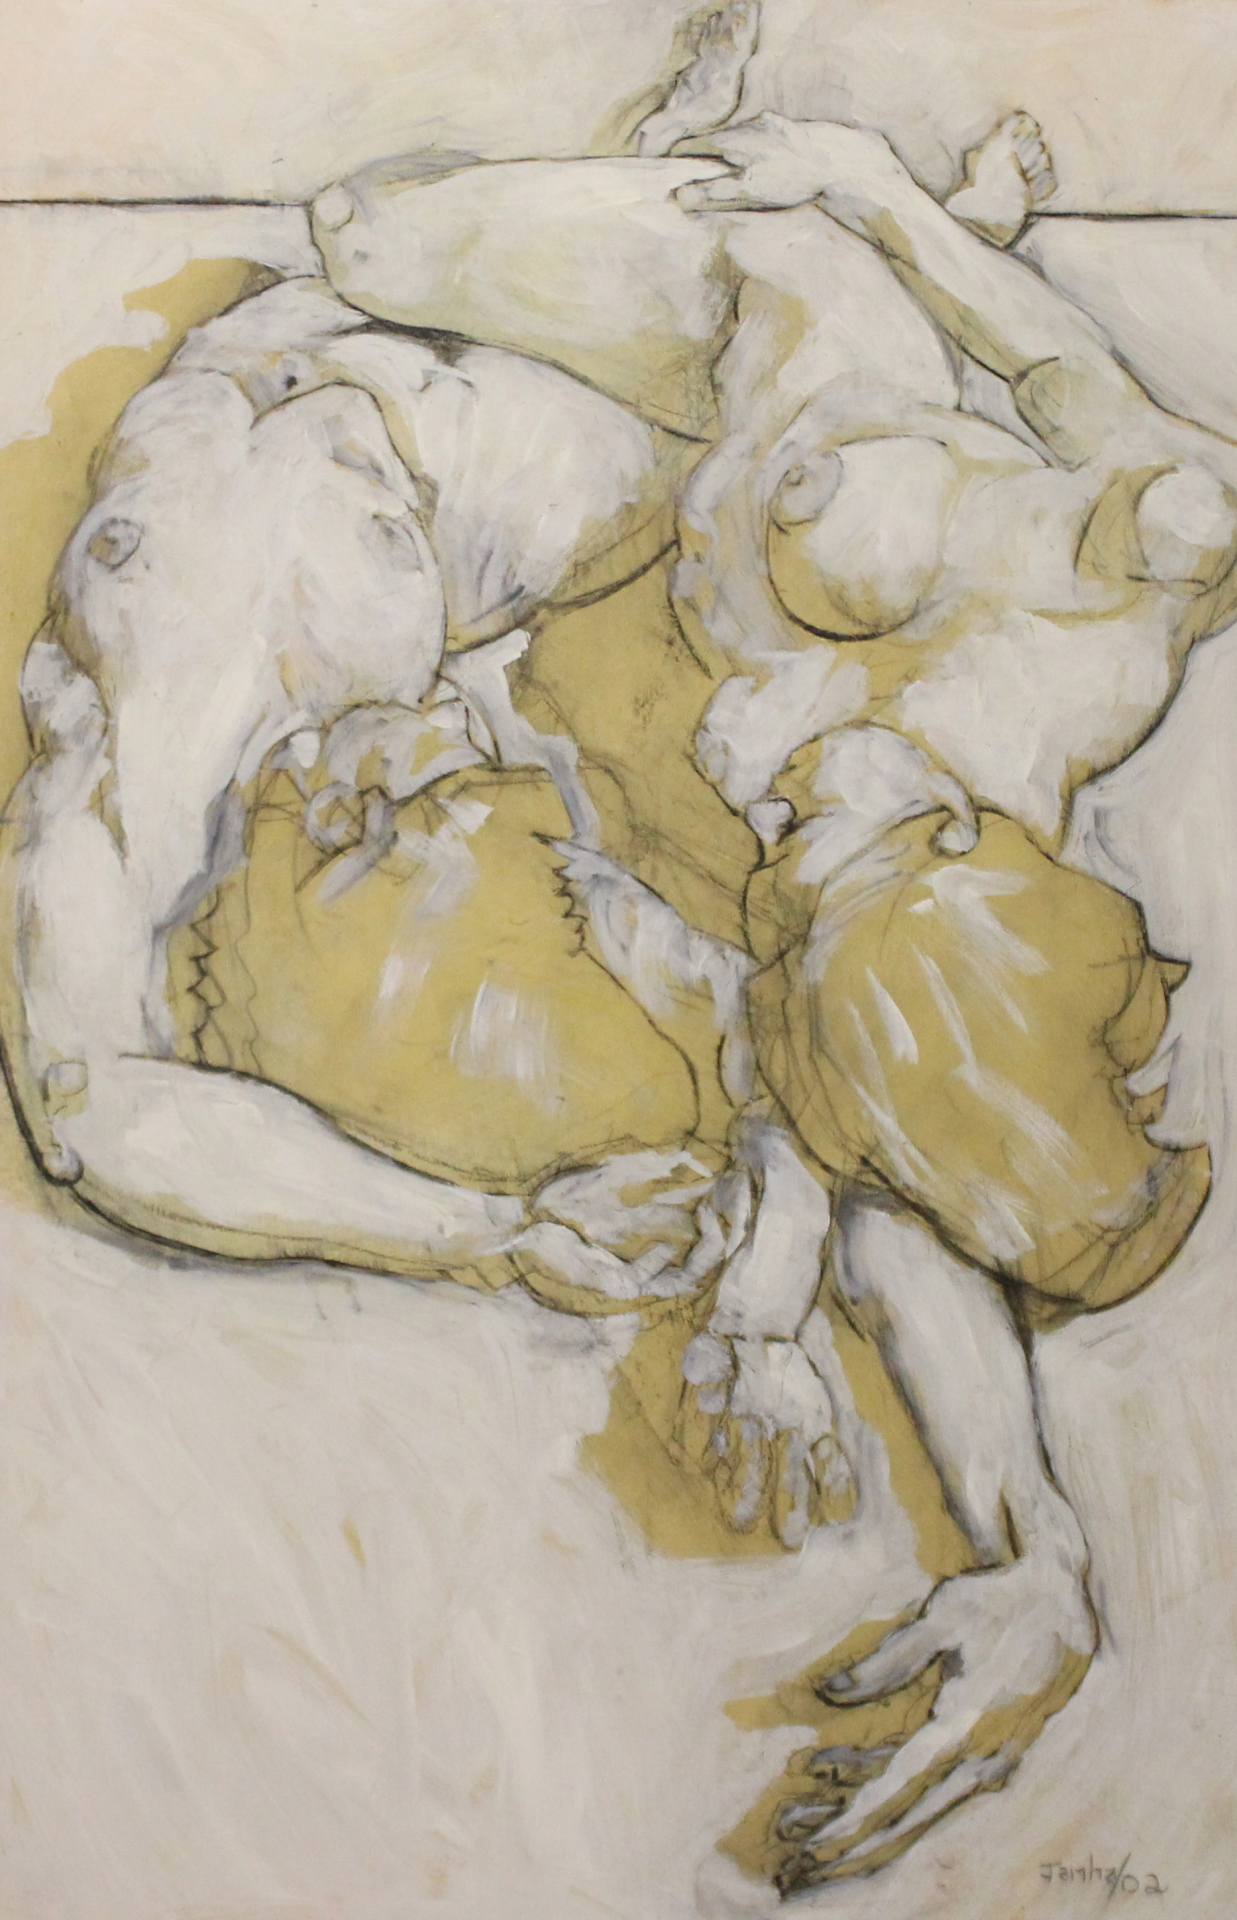 TWO FIGURES - 48X32 - MM ON PANEL - 2002